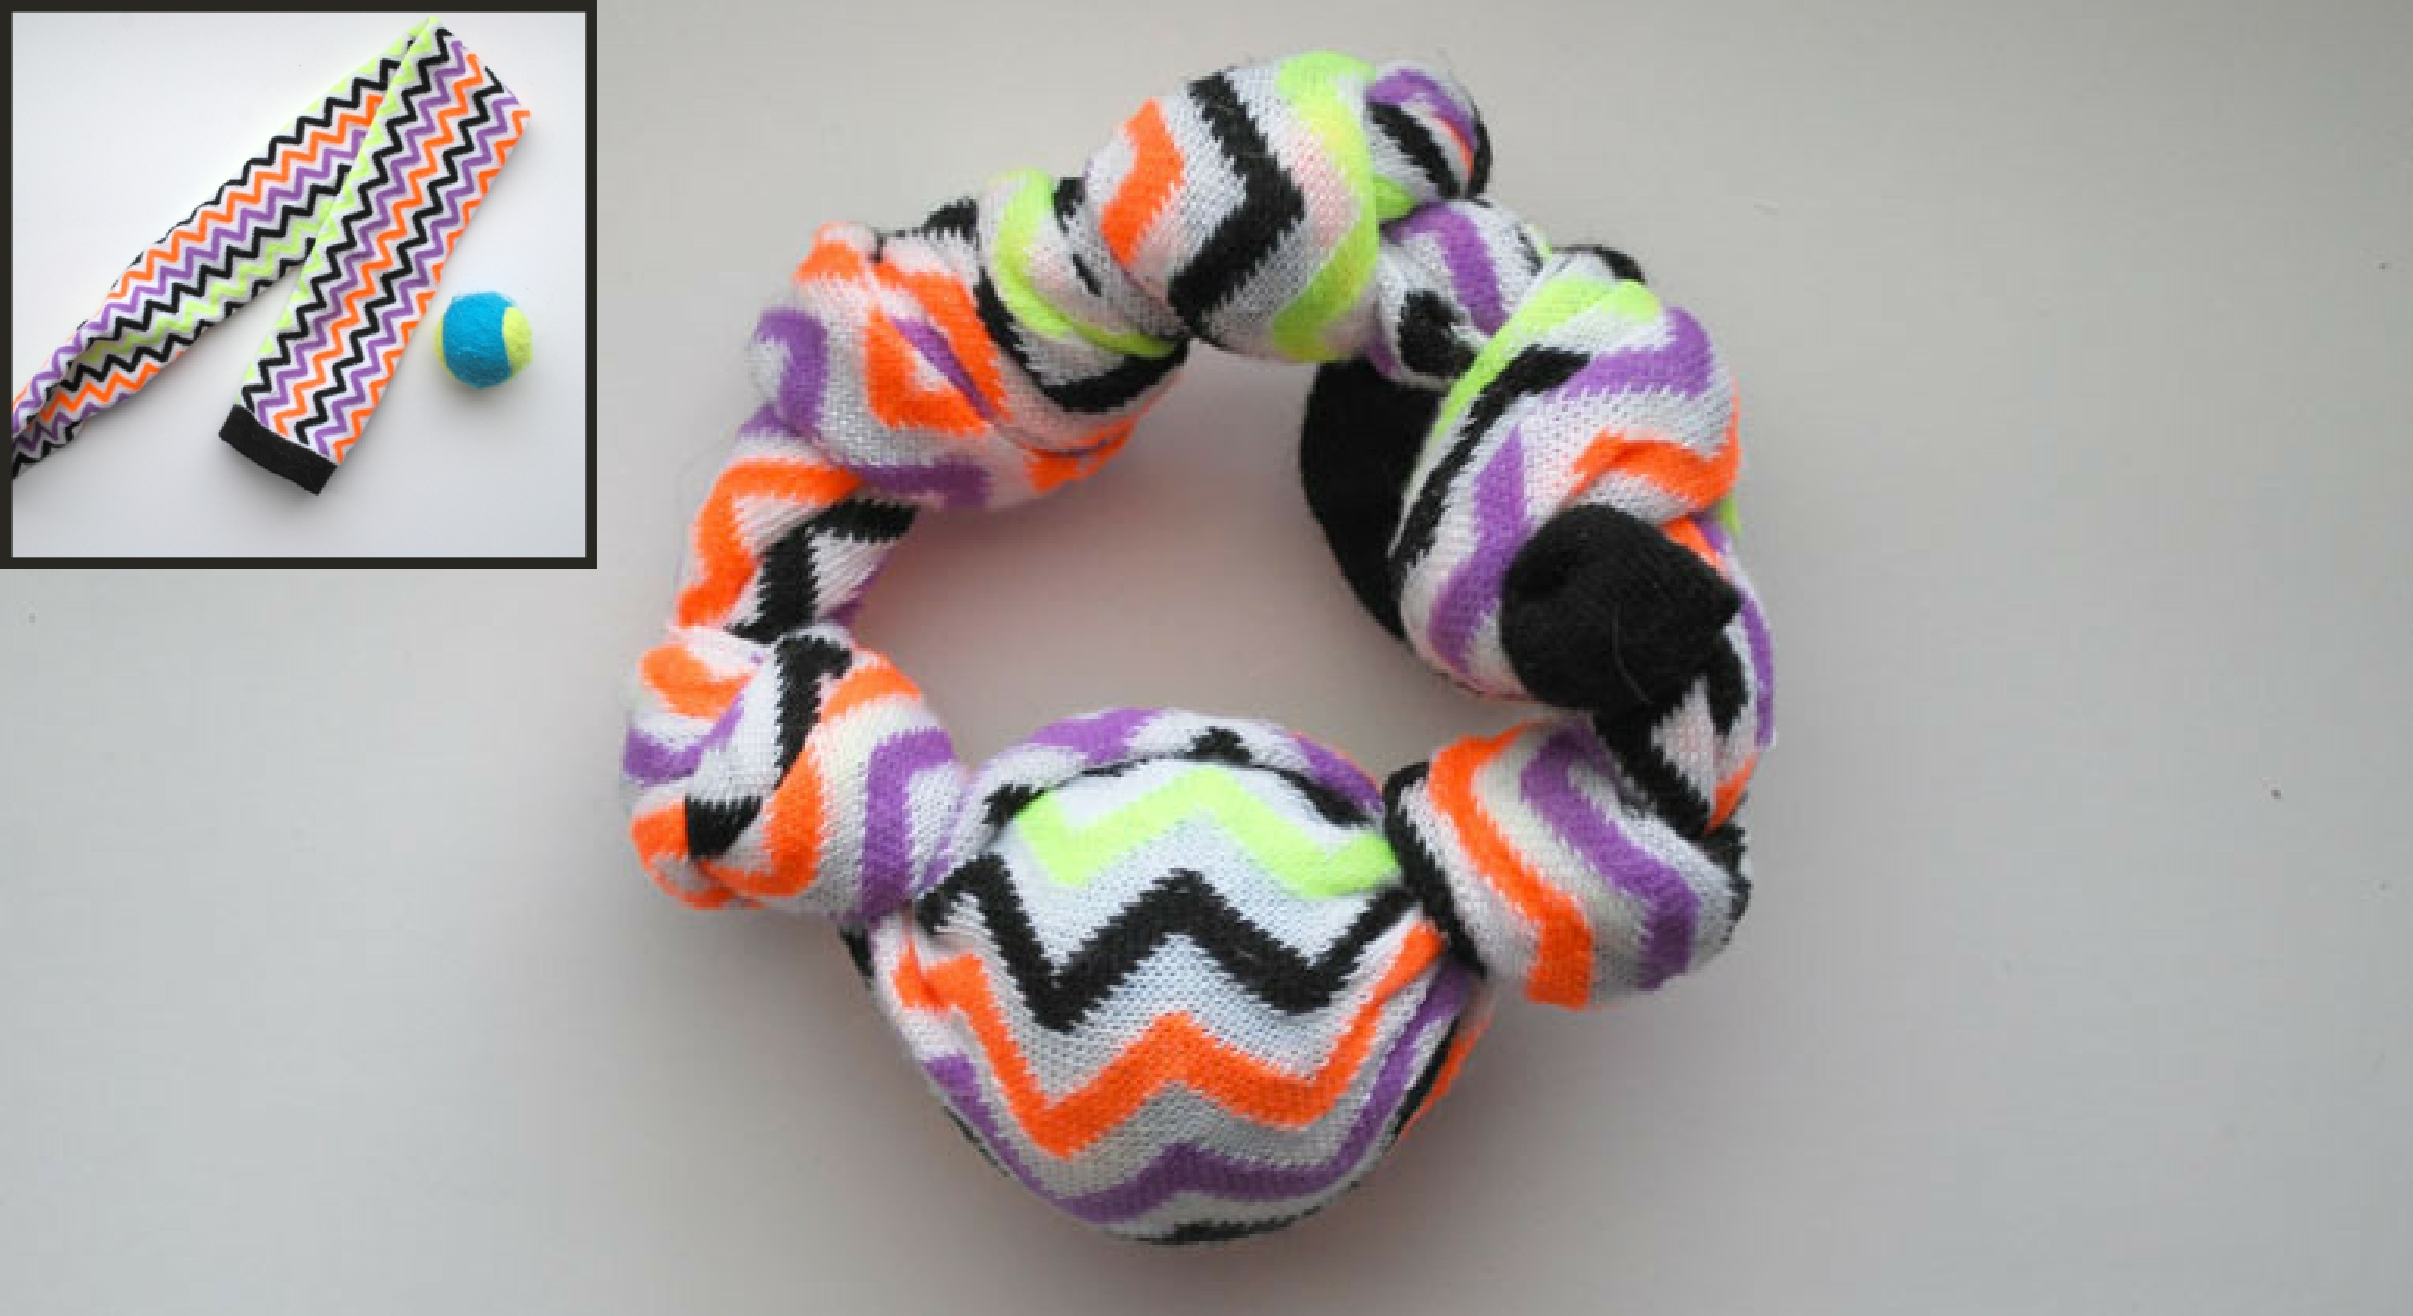 No-Sew DIY Dog Toys: 4 Ways To Turn Old Socks Into Puppy Play